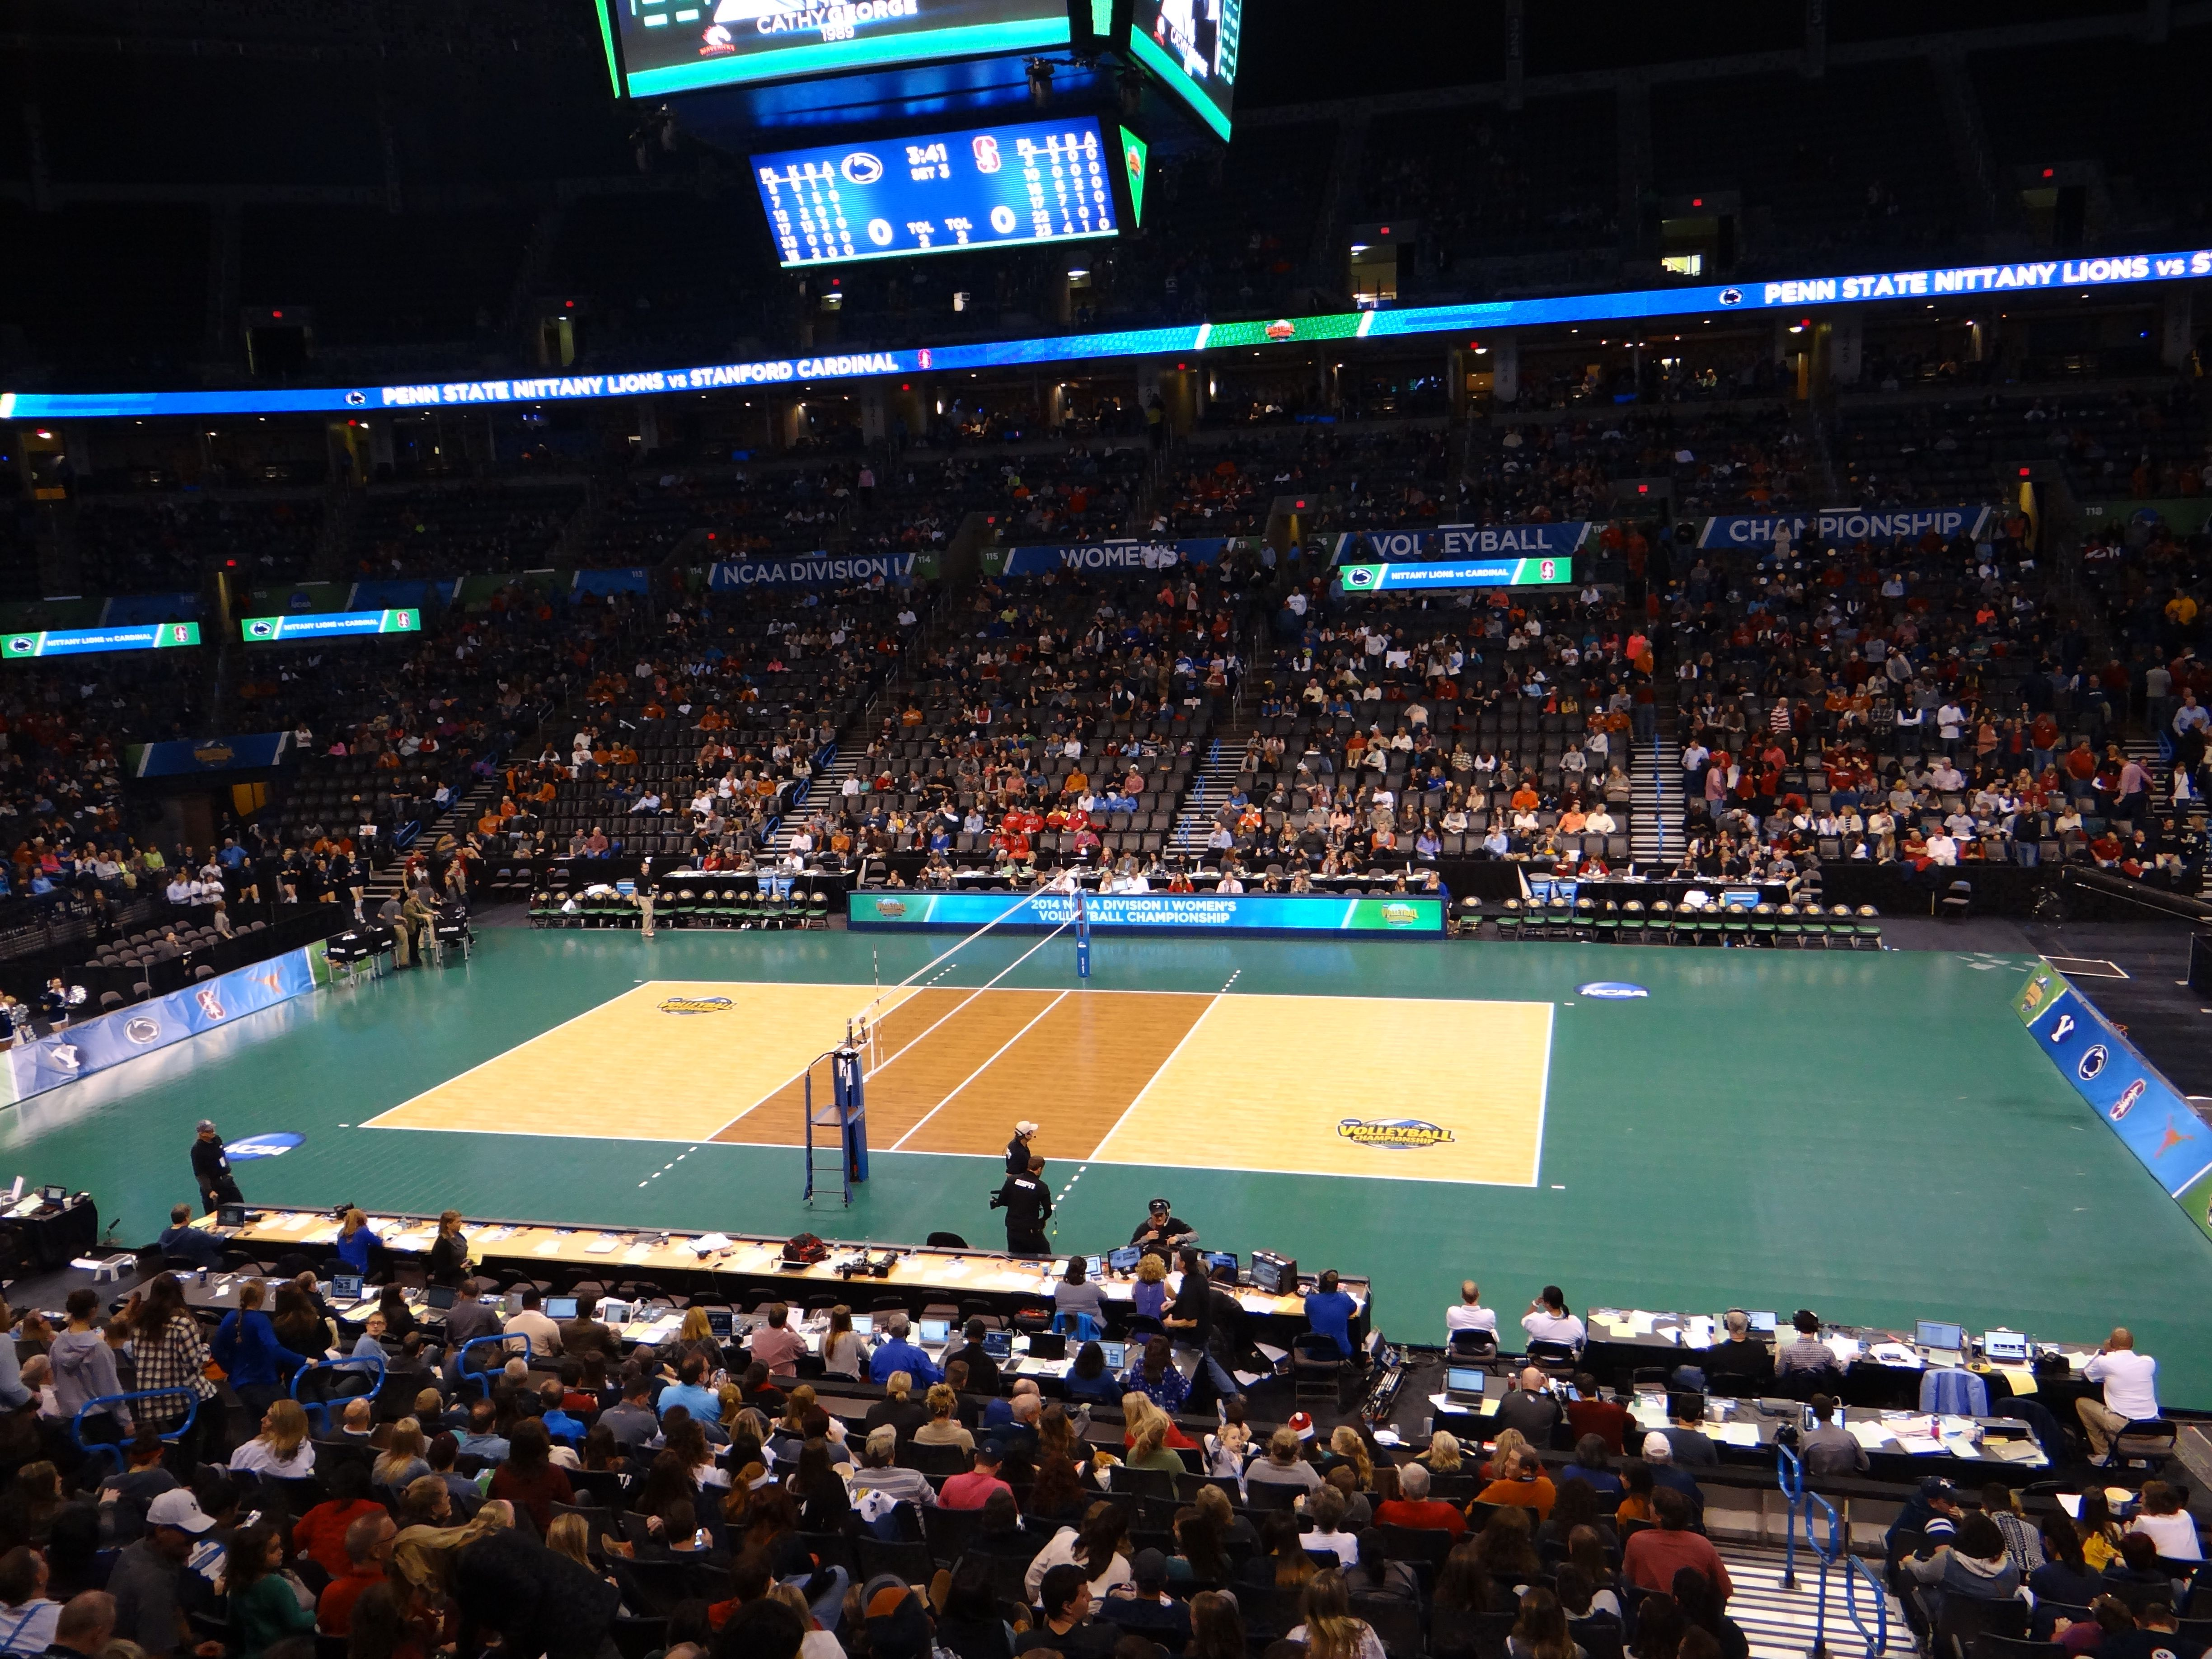 Sport Court Transforms Chesapeake Energy Arena For Ncaa Di Volleyball Championship Sport Court Sports Court Flooring Sport Court Home Basketball Court